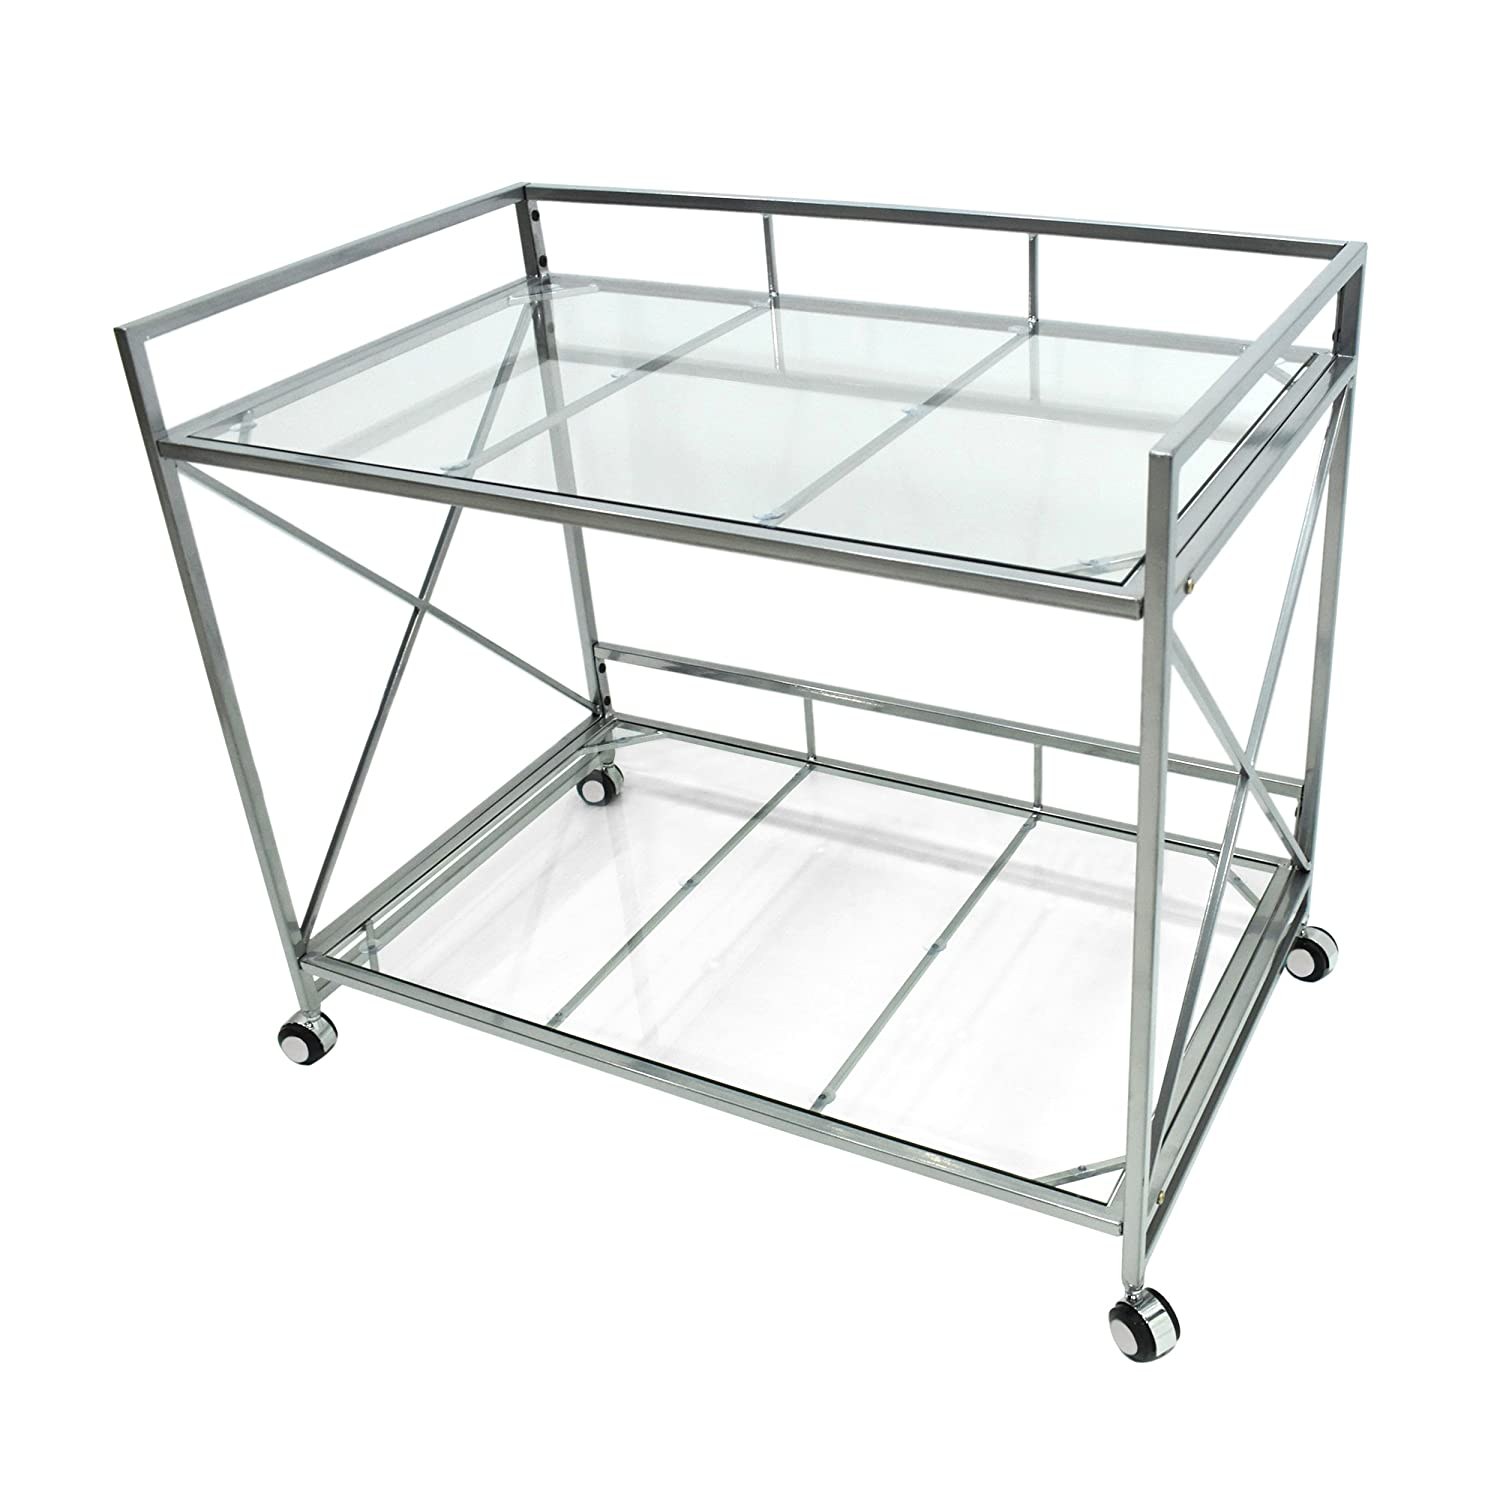 Christopher Knight Home 304469 Danae Industrial Modern Iron and Glass Bar Cart, Silver,